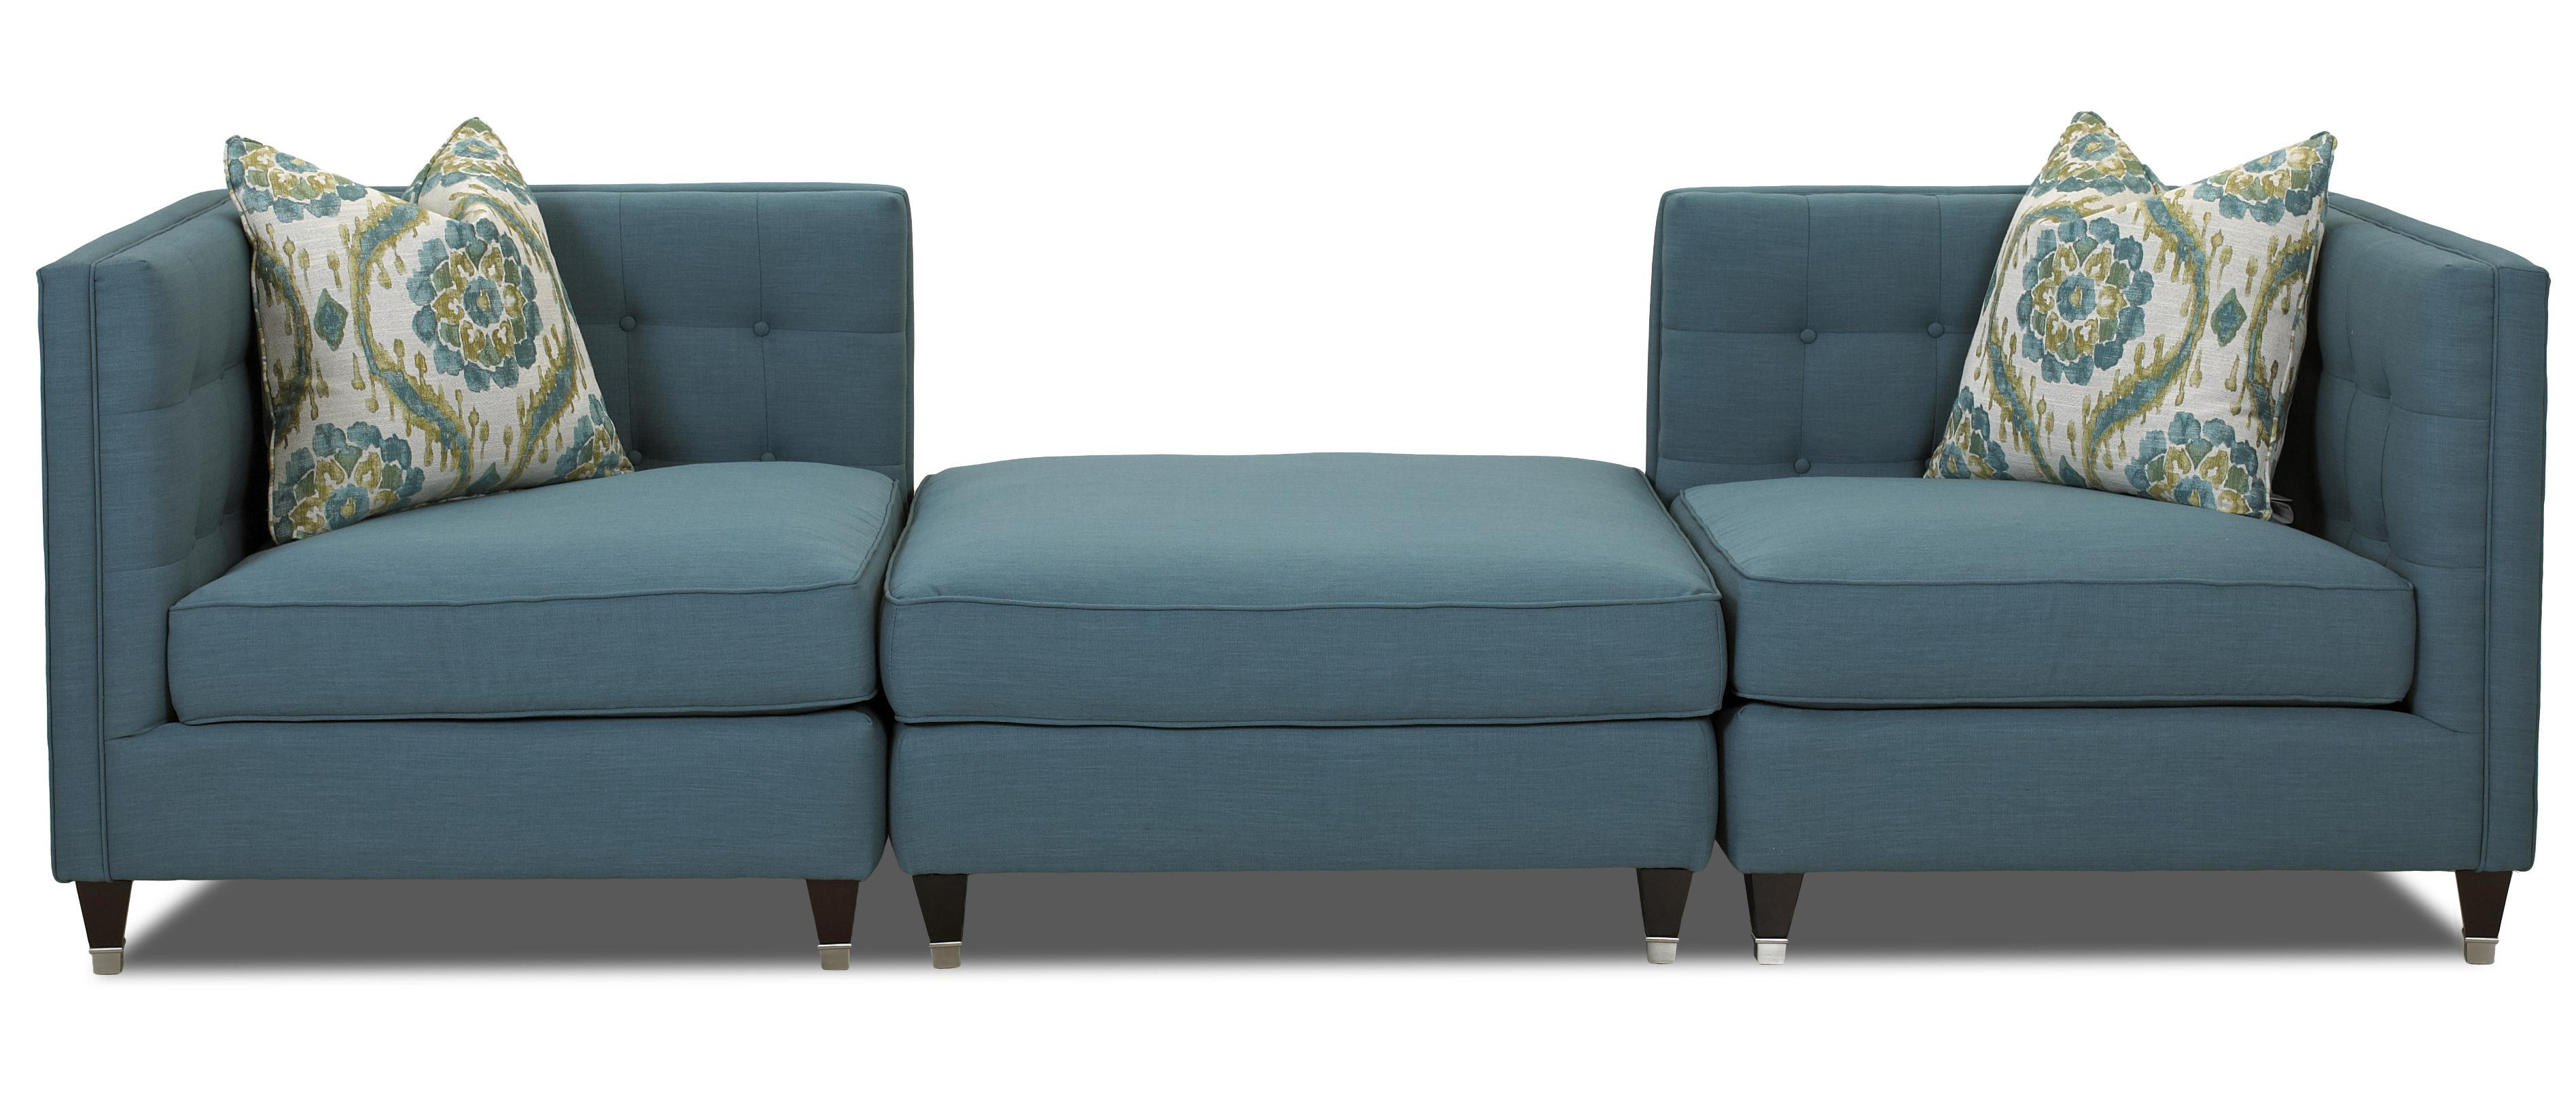 Contemporary Corner Chair with Tufting. Contemporary Corner Chair with Tufting by Klaussner   Wolf and